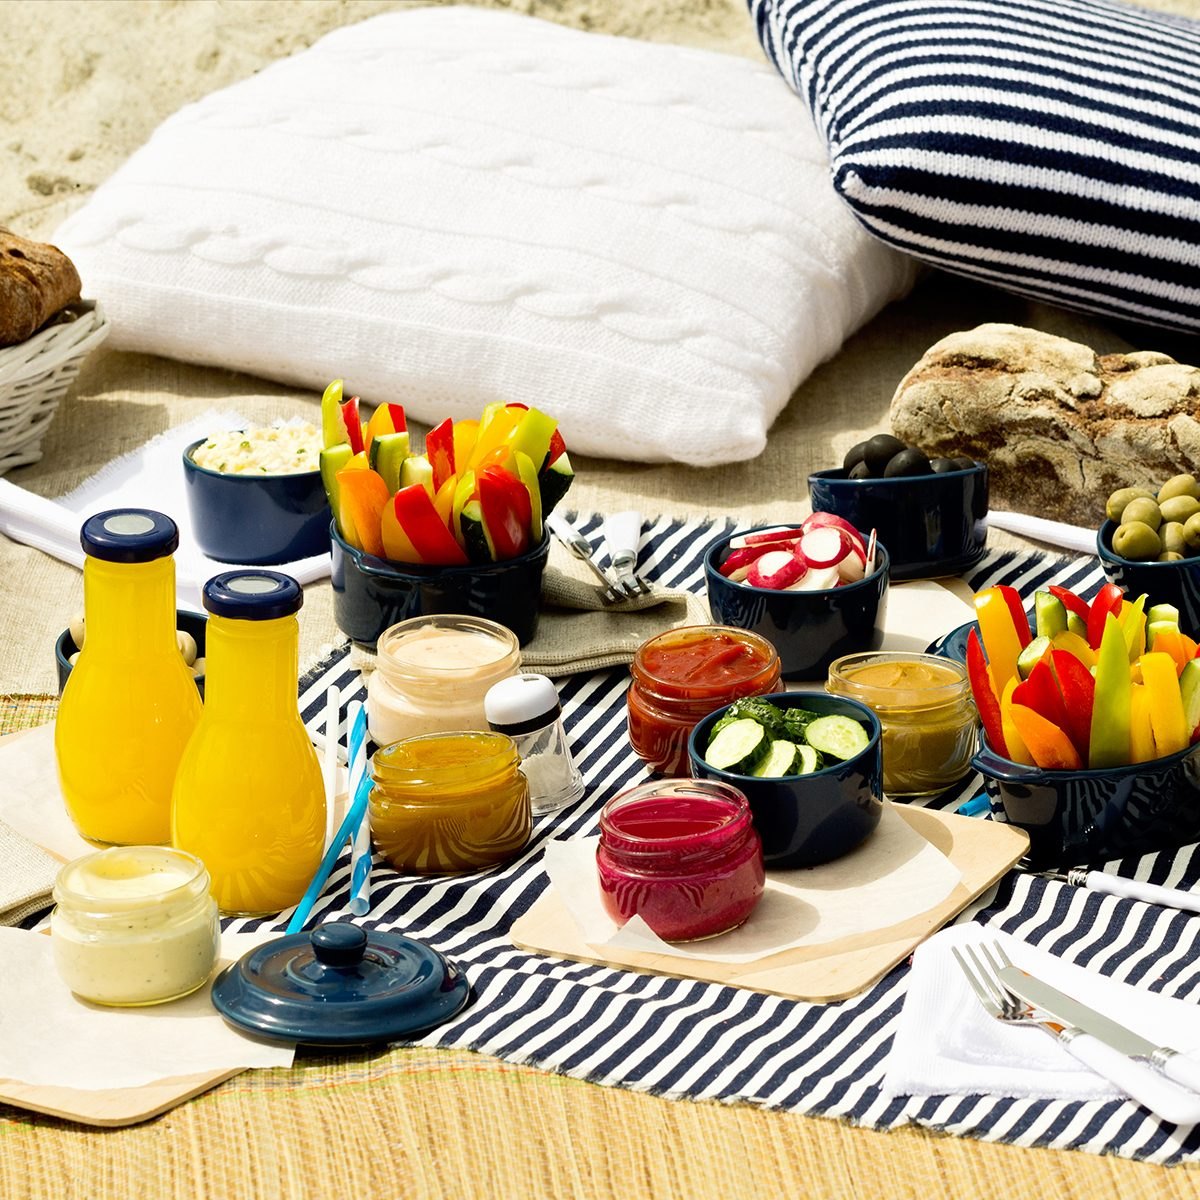 Summer picnic on the beach. Serving picnic utensils blue with vegetables and sauces on striped tablecloths and knitted pillow.